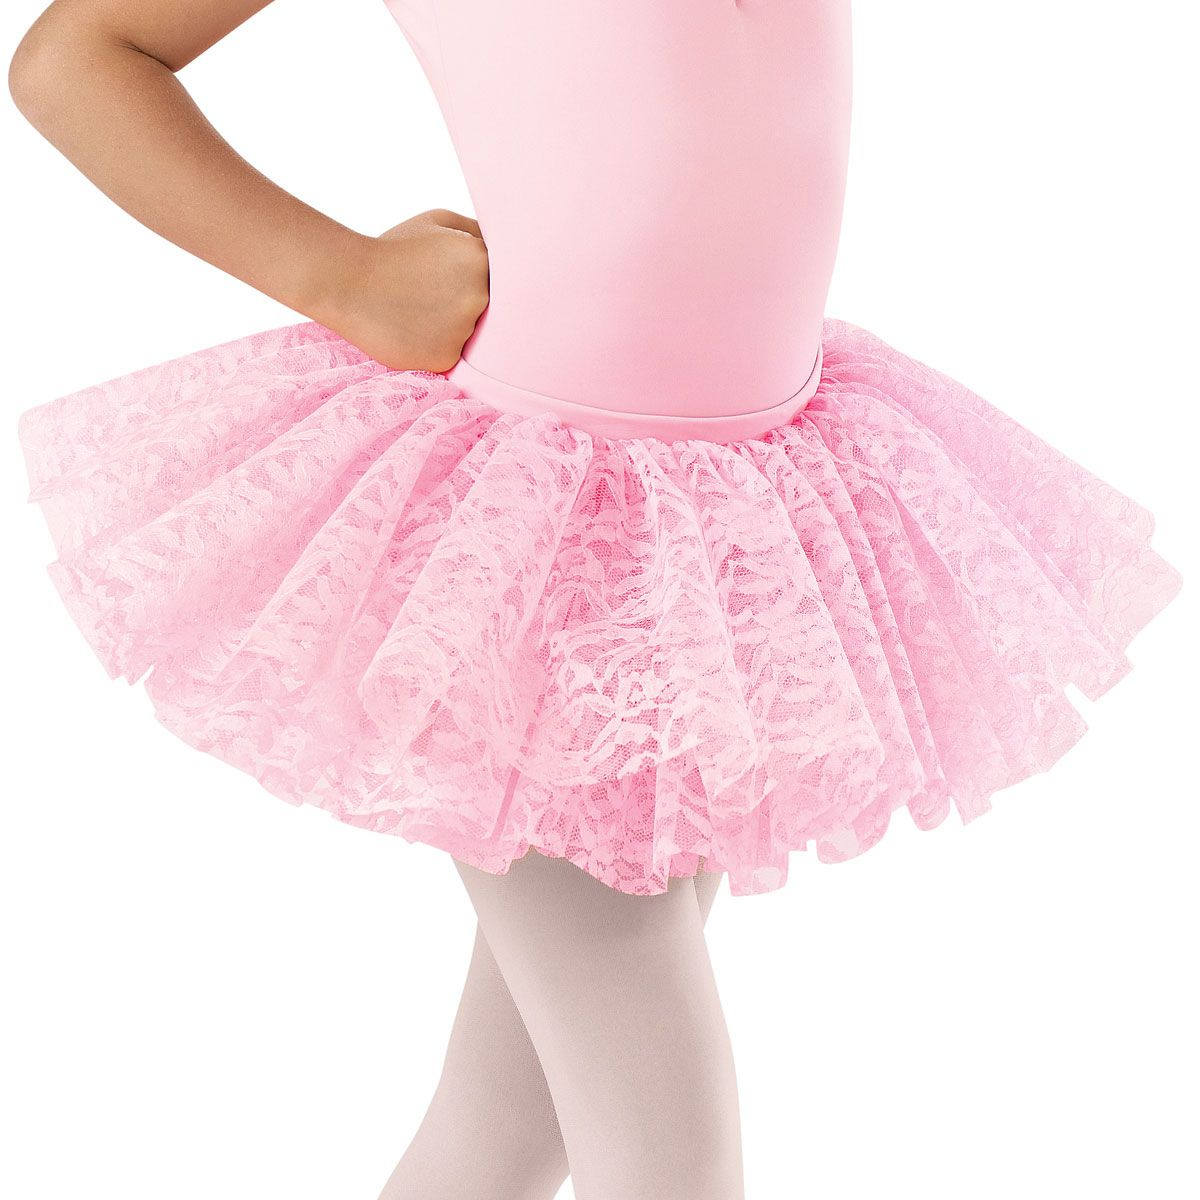 01336aa31 Girls  Floral Lace Ballet Tutu  Little Stars Dancewear Solutions ...